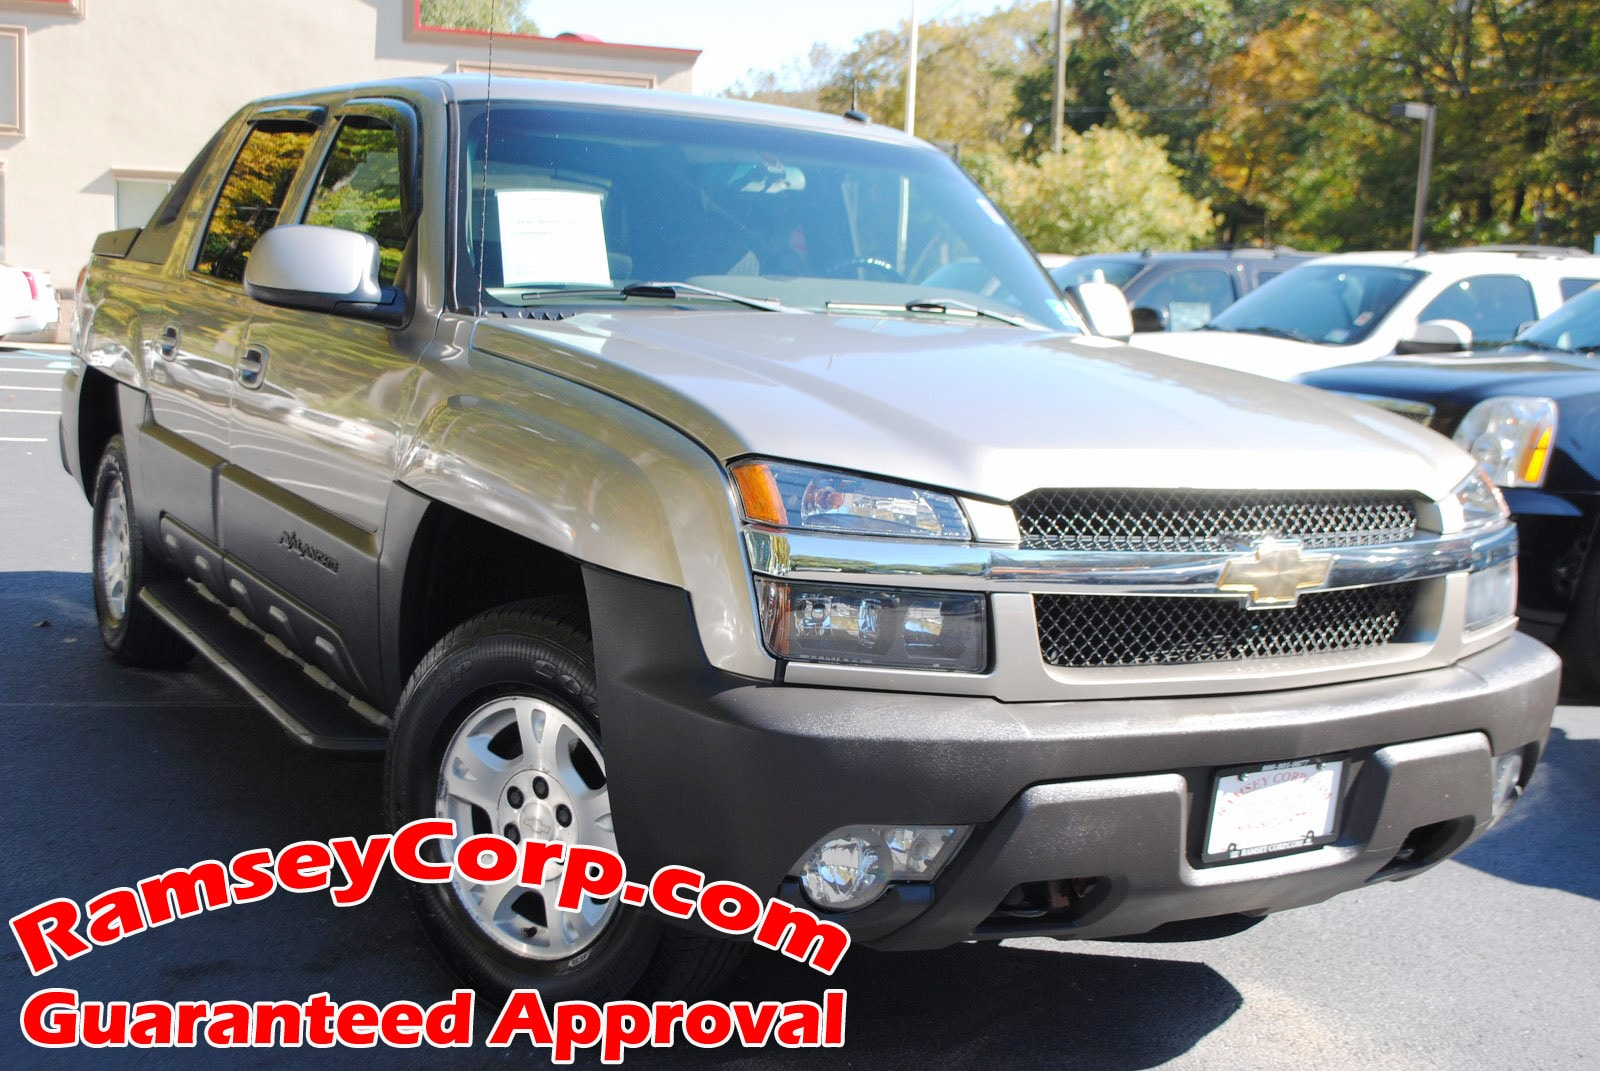 Avalanche chevy avalanche 2004 : Used 2003 Chevrolet Avalanche 1500 For Sale | West Milford NJ